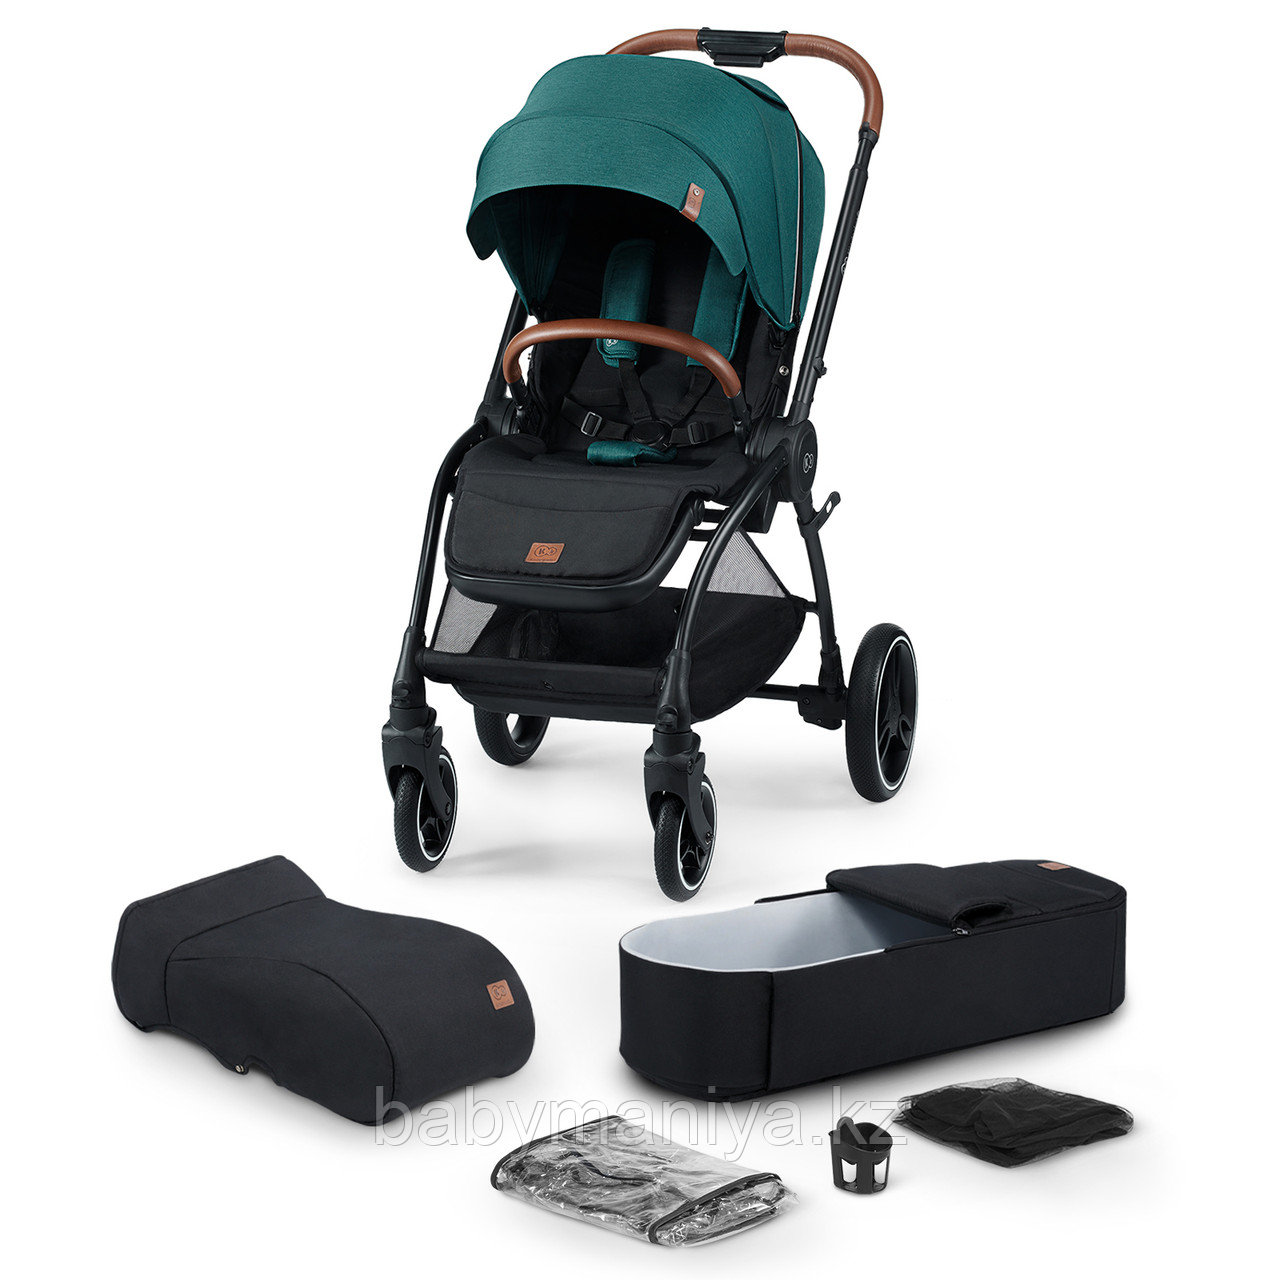 Коляска 2 в 1 Kinderkraft 🇪🇺 EVOLUTION COCOON Midnight Green